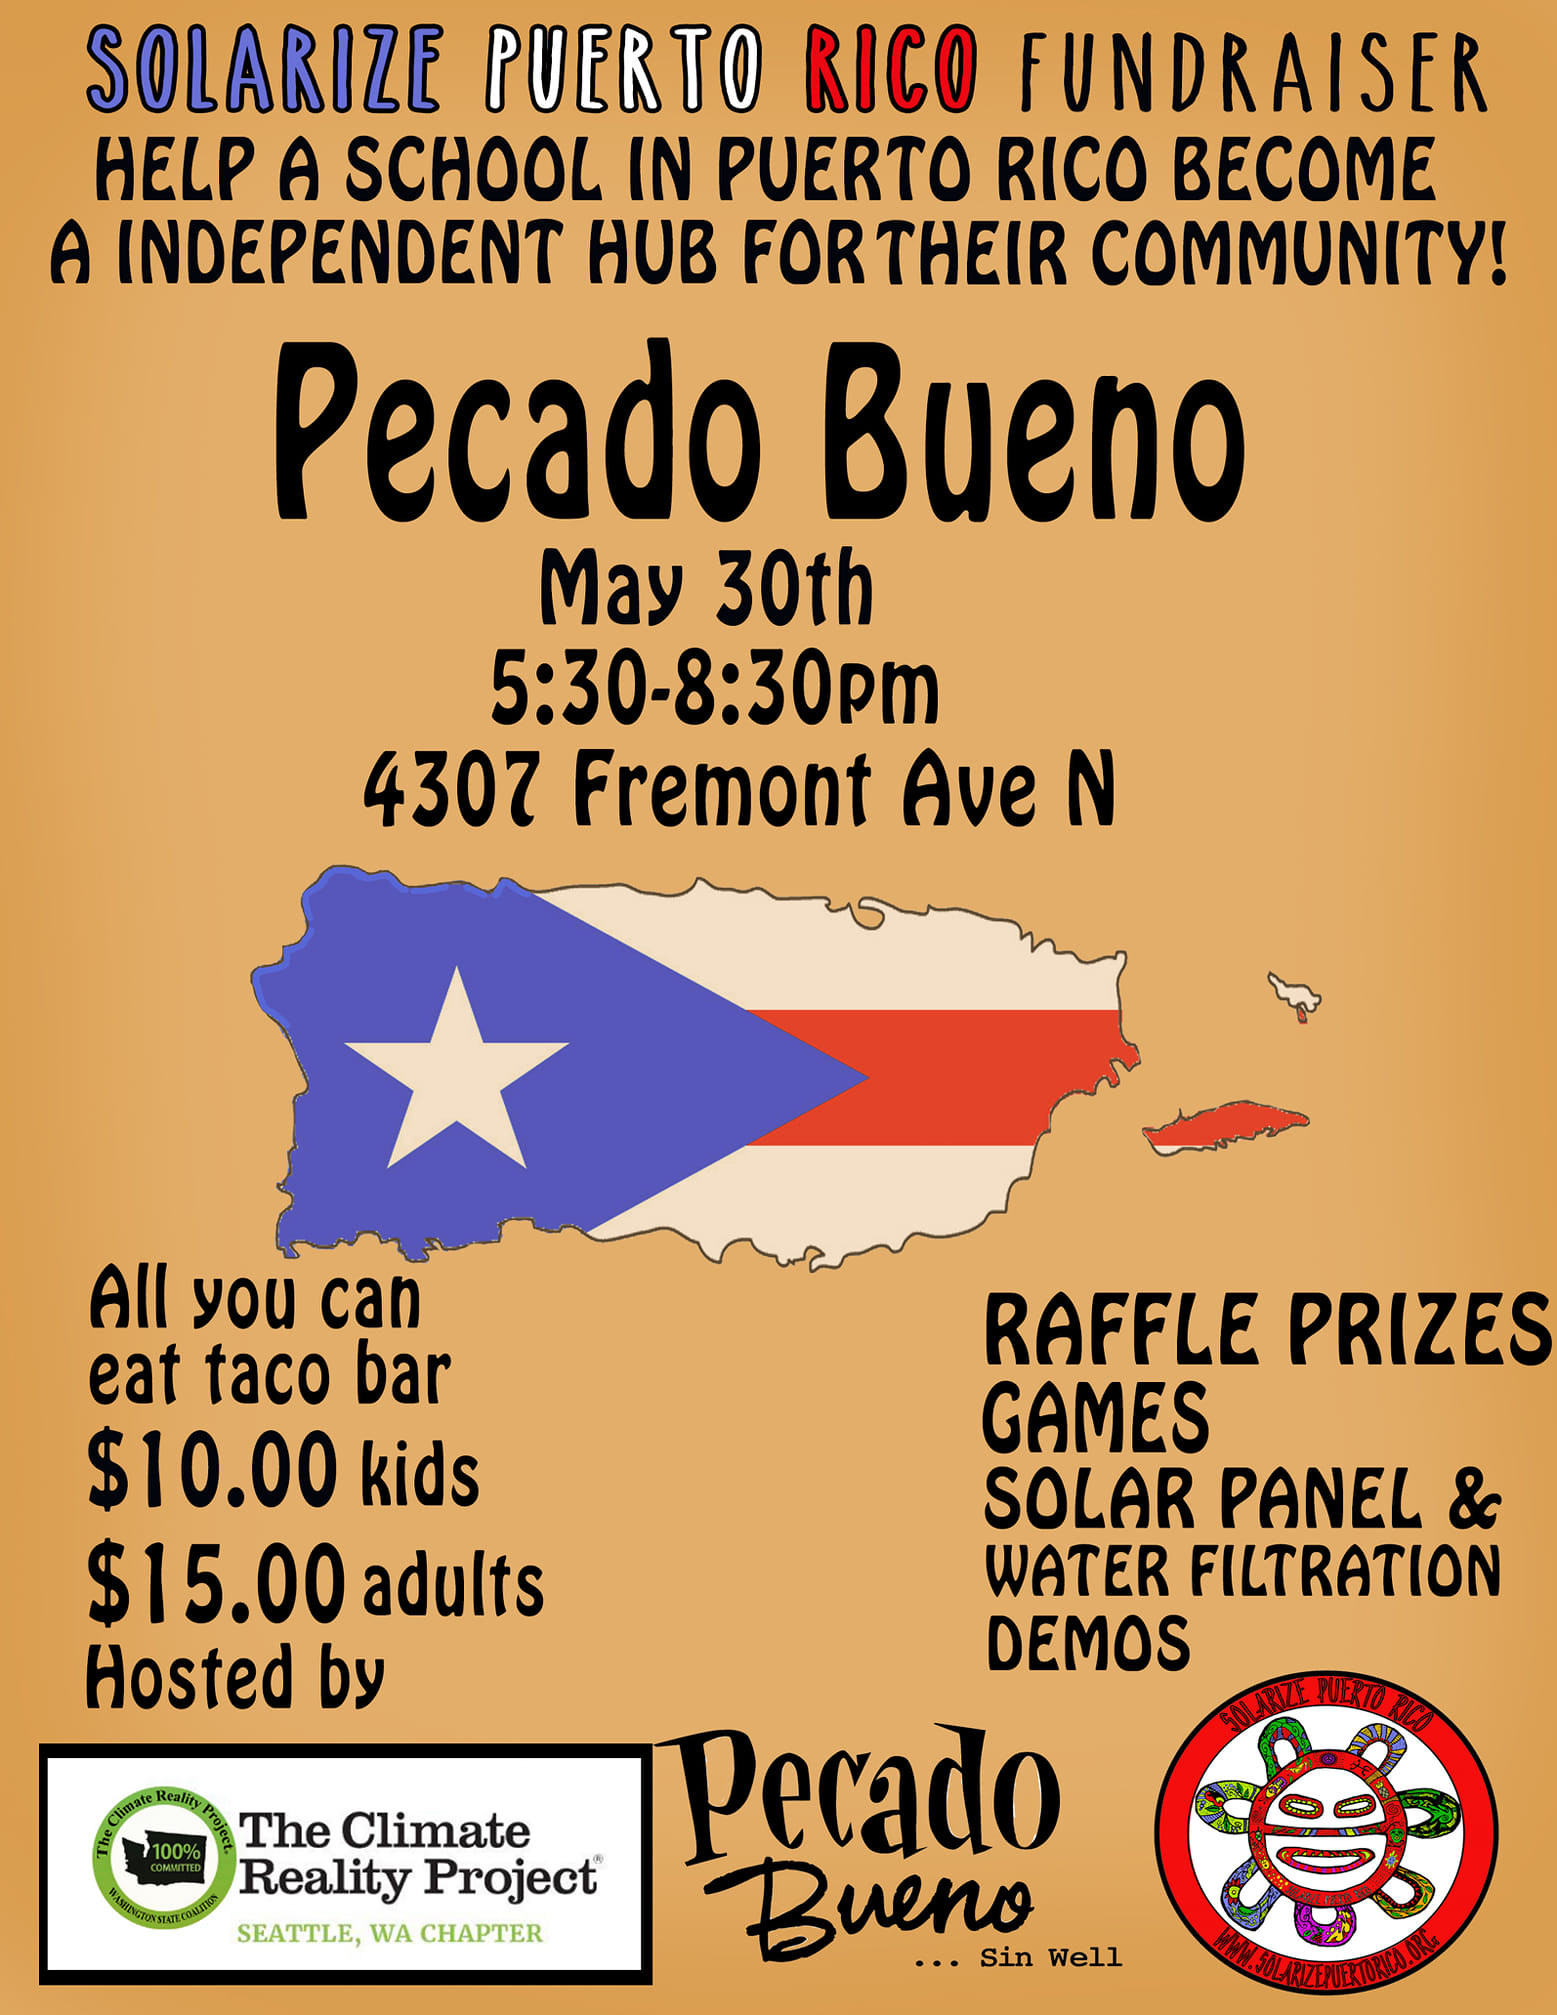 Solarize Puerto Rico Fundraiser at Pecado Bueno May 30th, 5:30pm-8:30pm. Hosted by Climate Reality Project Seattle Chapter